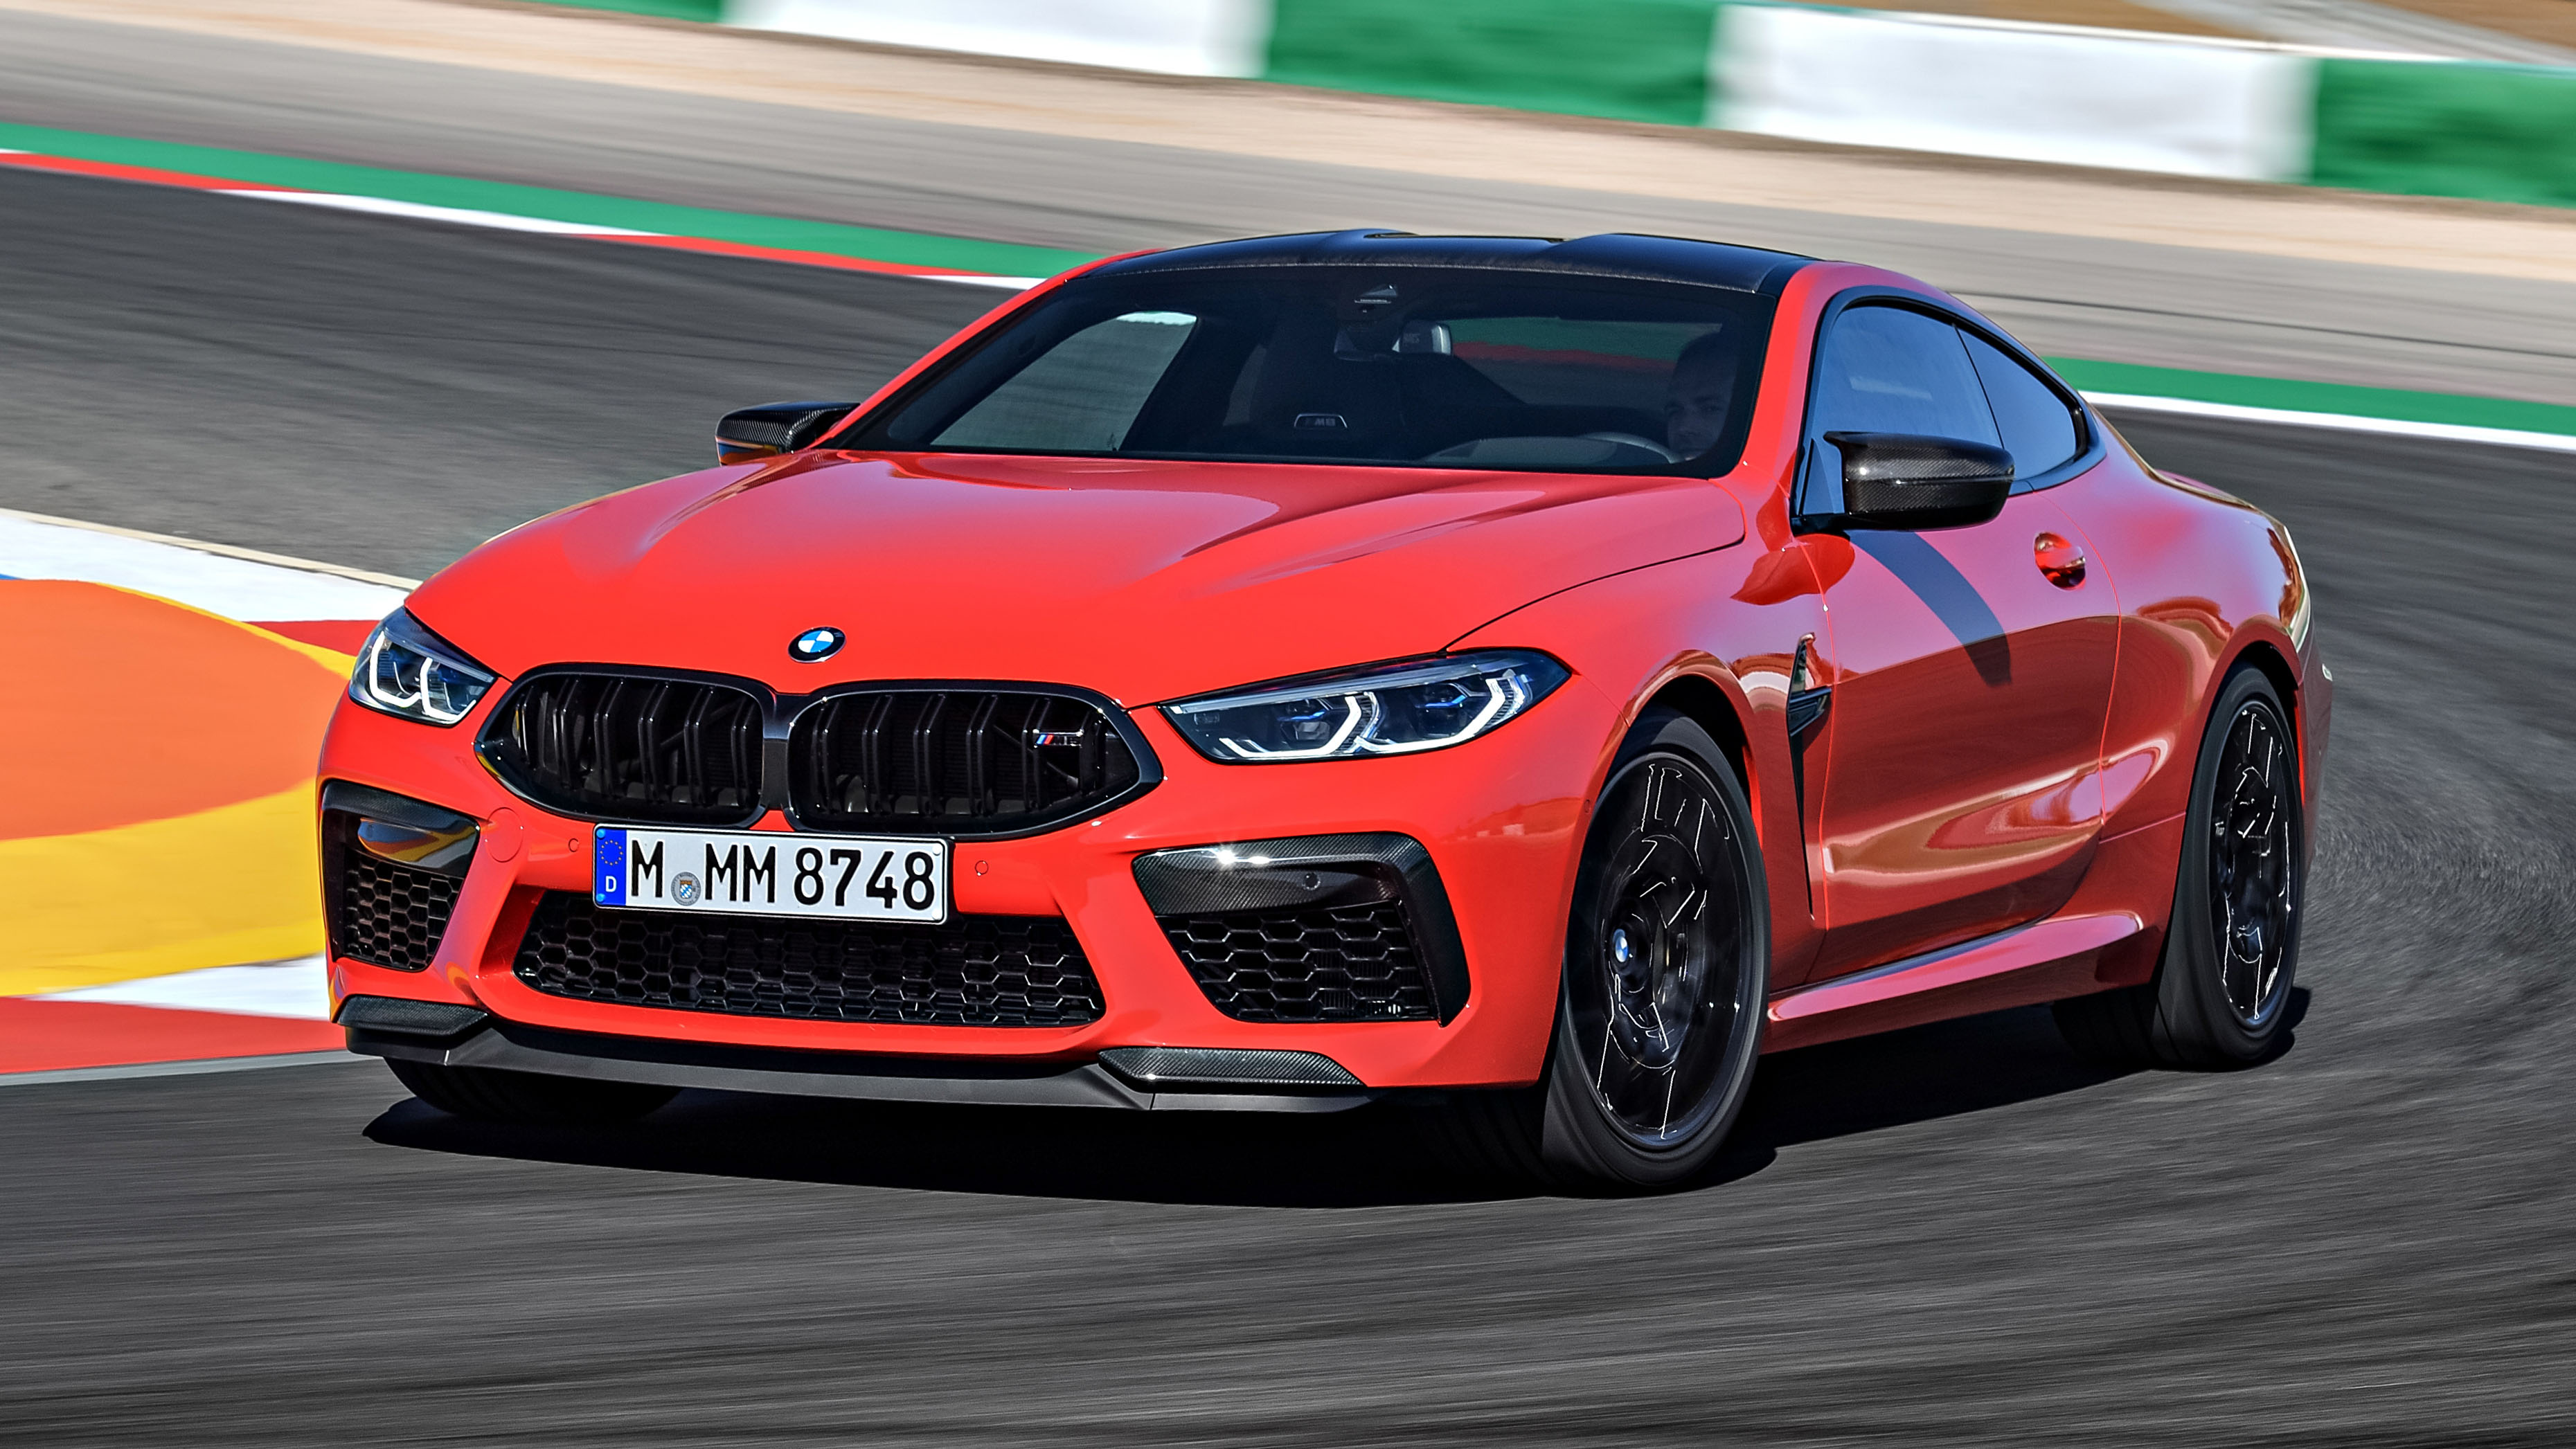 Filled to the brim with exhilarating potential. Bmw M8 Competition Review 2021 Top Gear